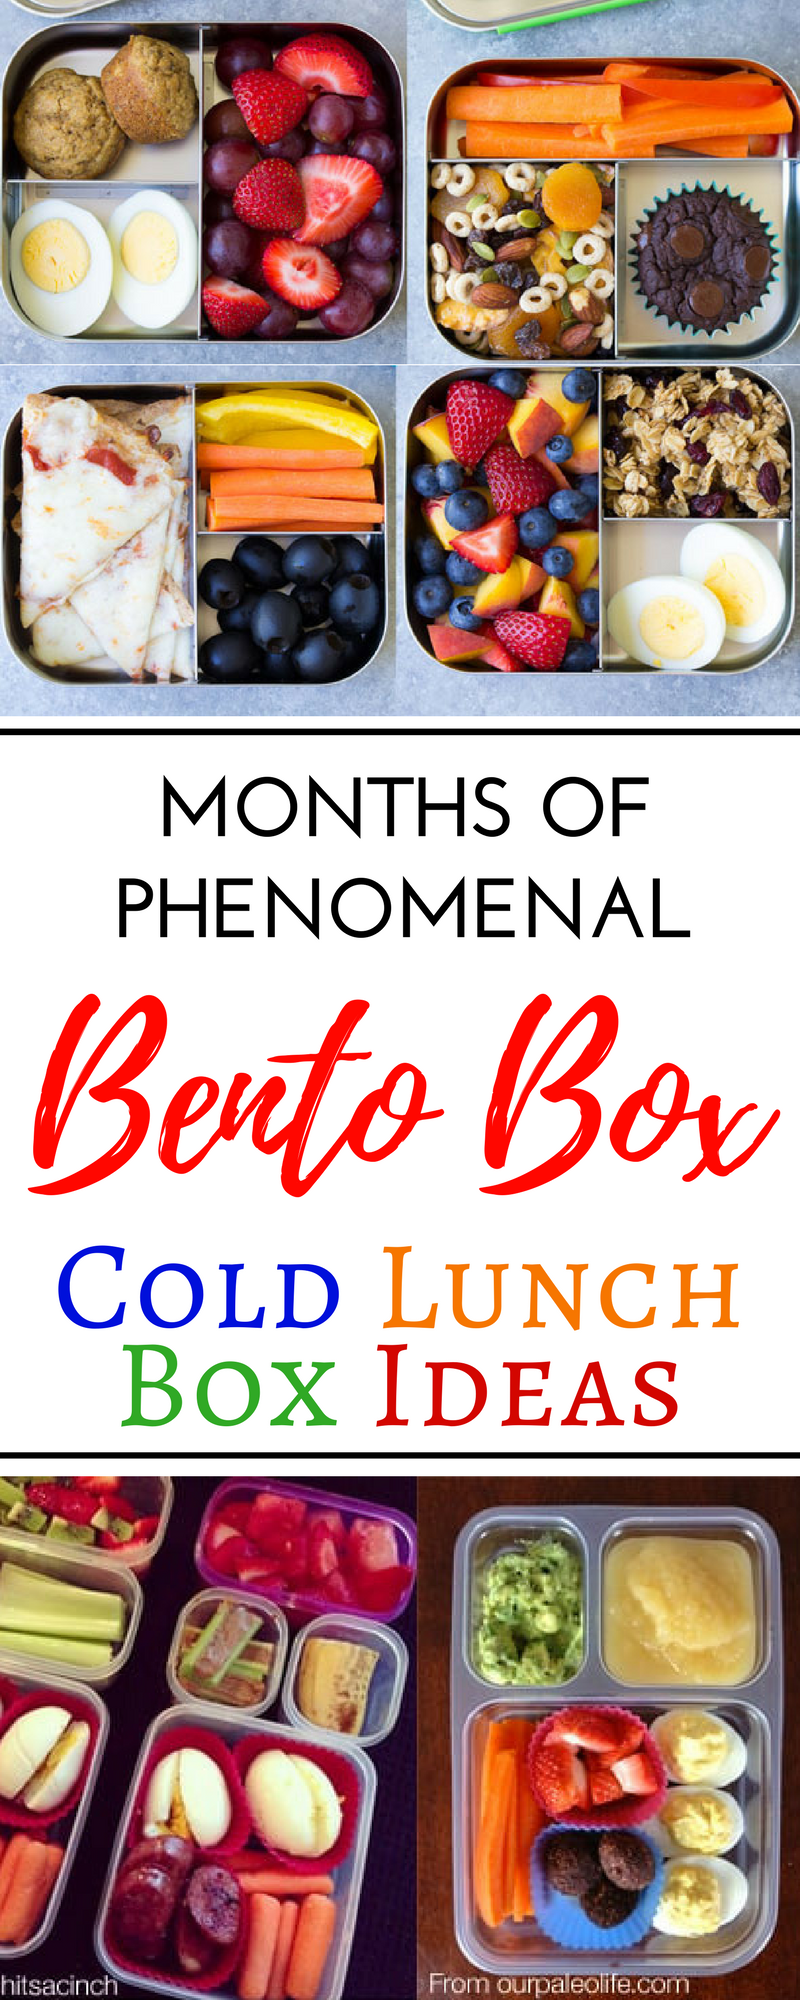 creative cold school lunch box ideas for picky eaters | recipes